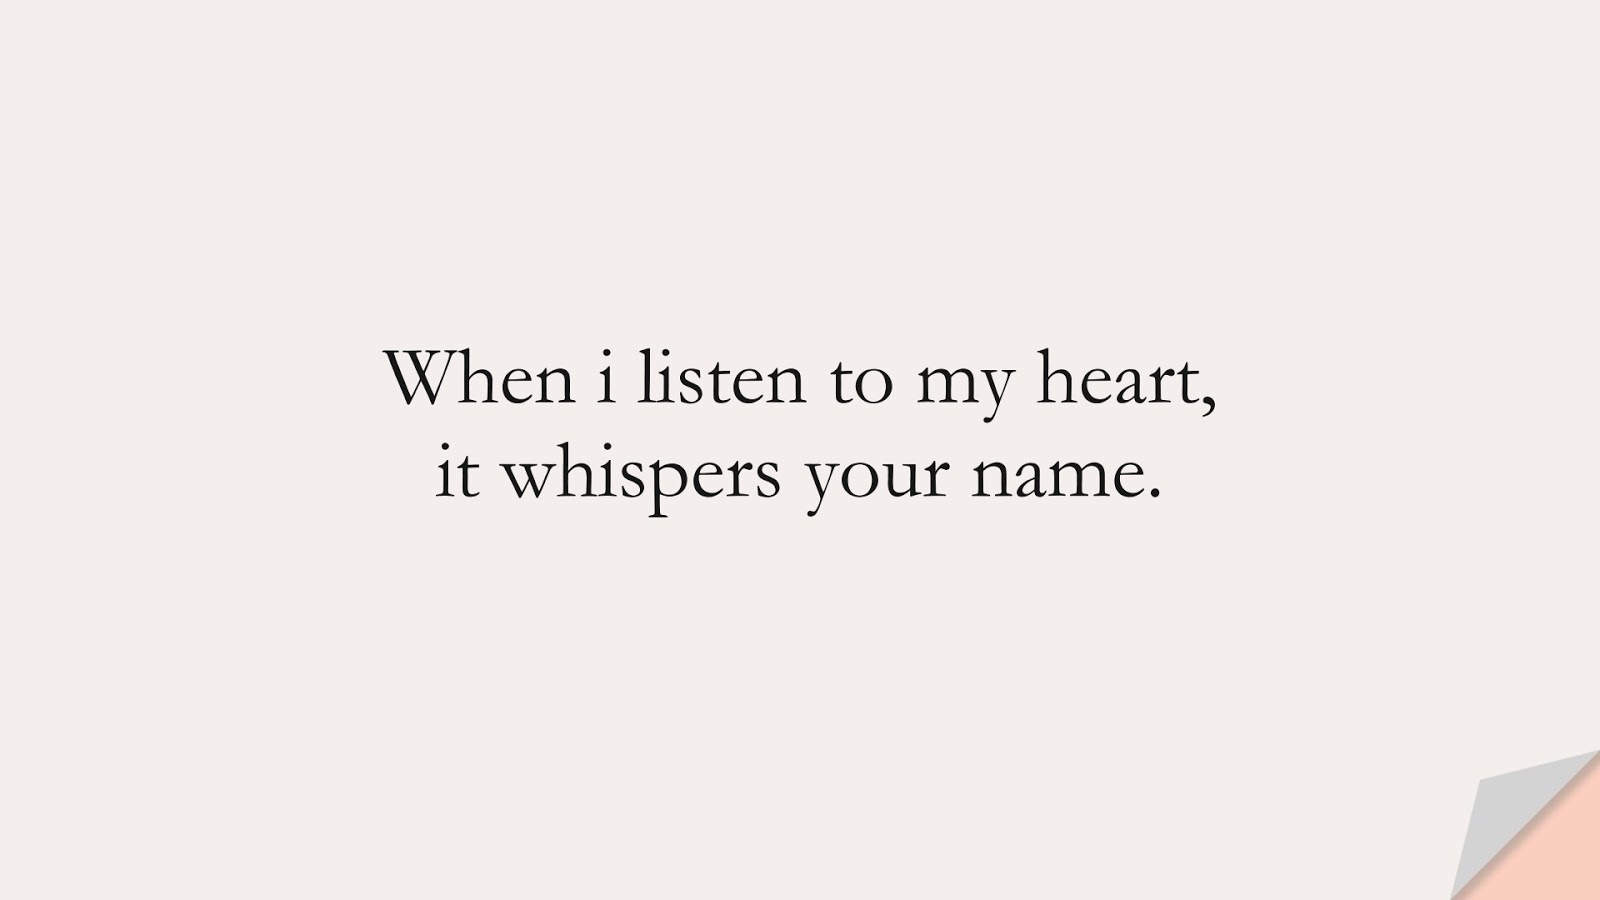 When i listen to my heart, it whispers your name.FALSE